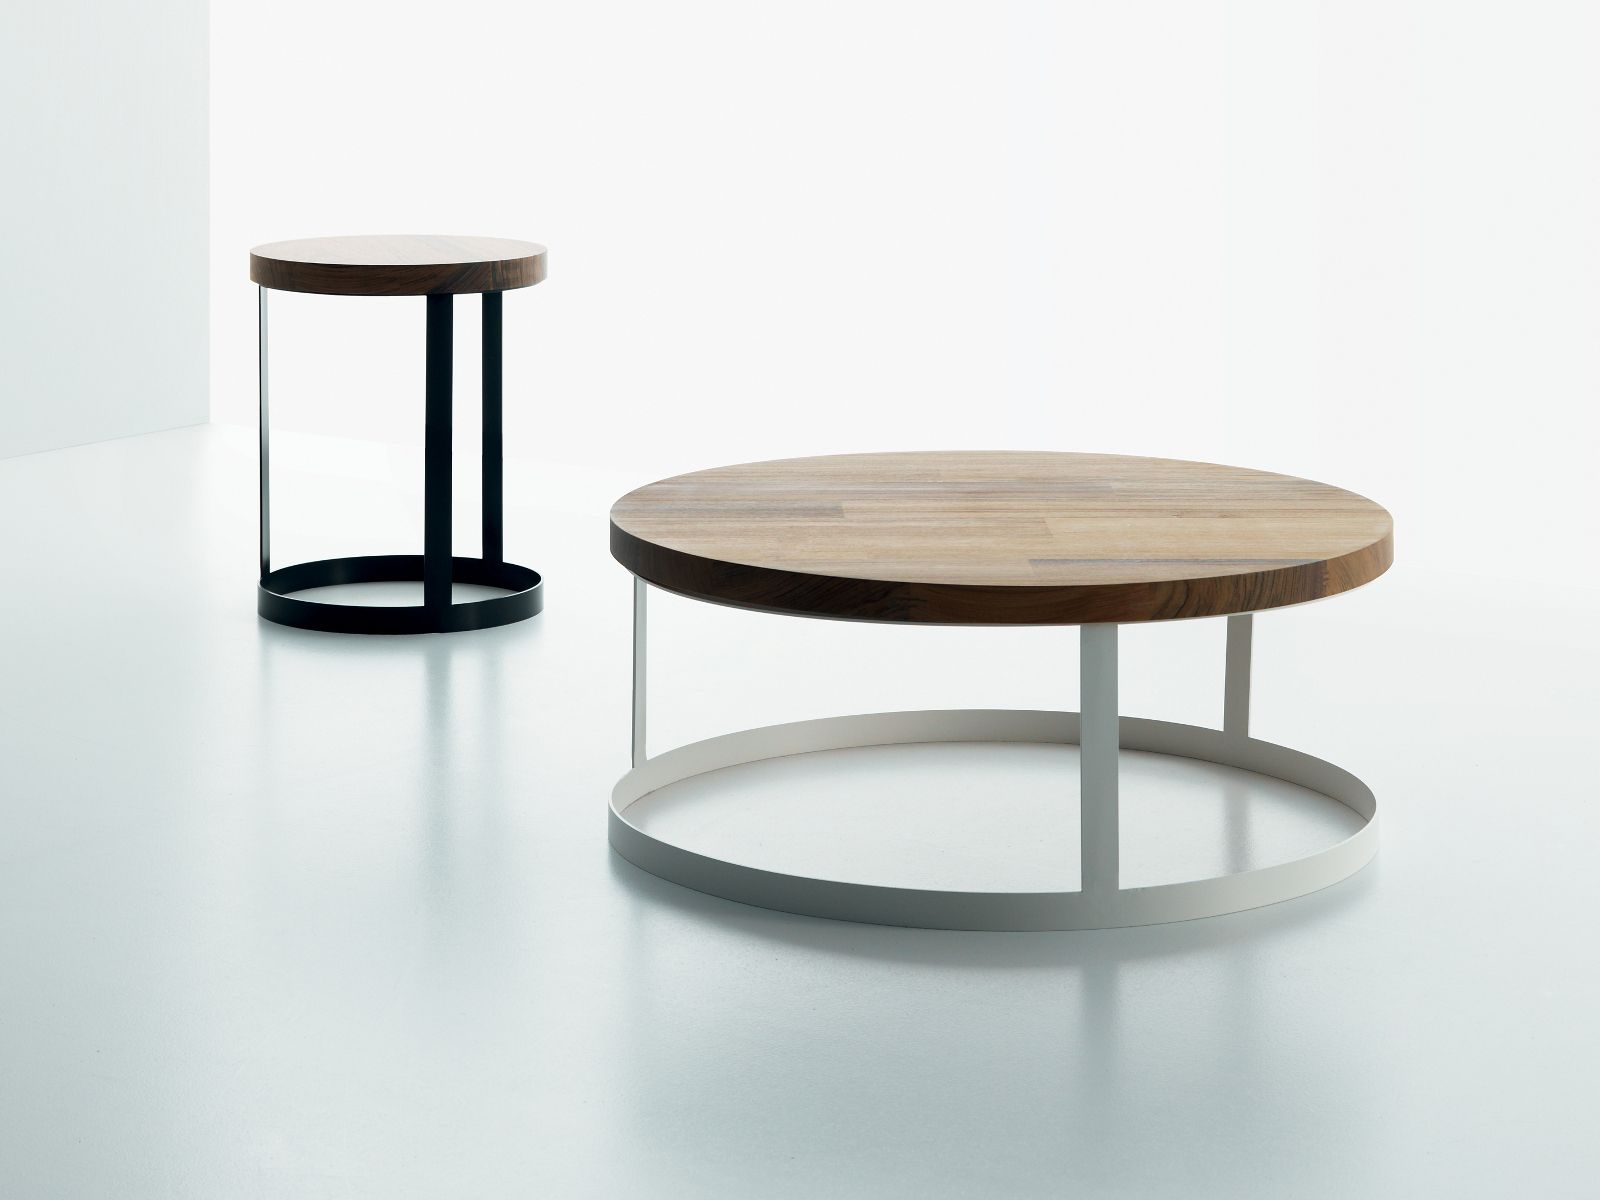 Immagini 662. Elegant Coffee Table Sets As Successful Decision ...